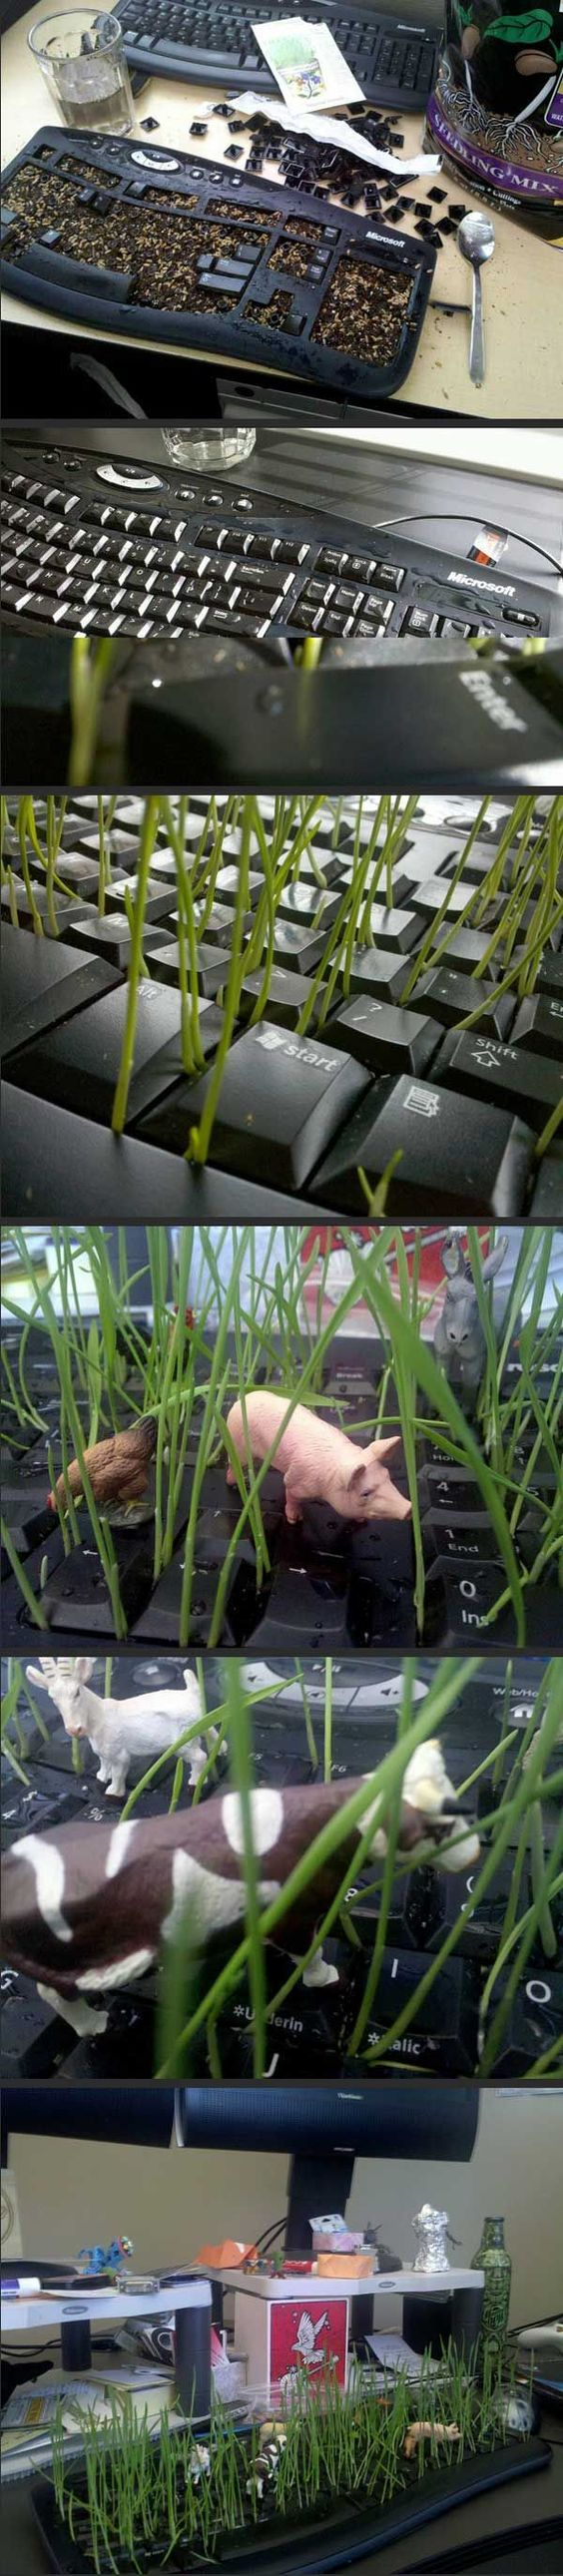 When my co-worker goes on vacation... Grow grass in his keyboard.